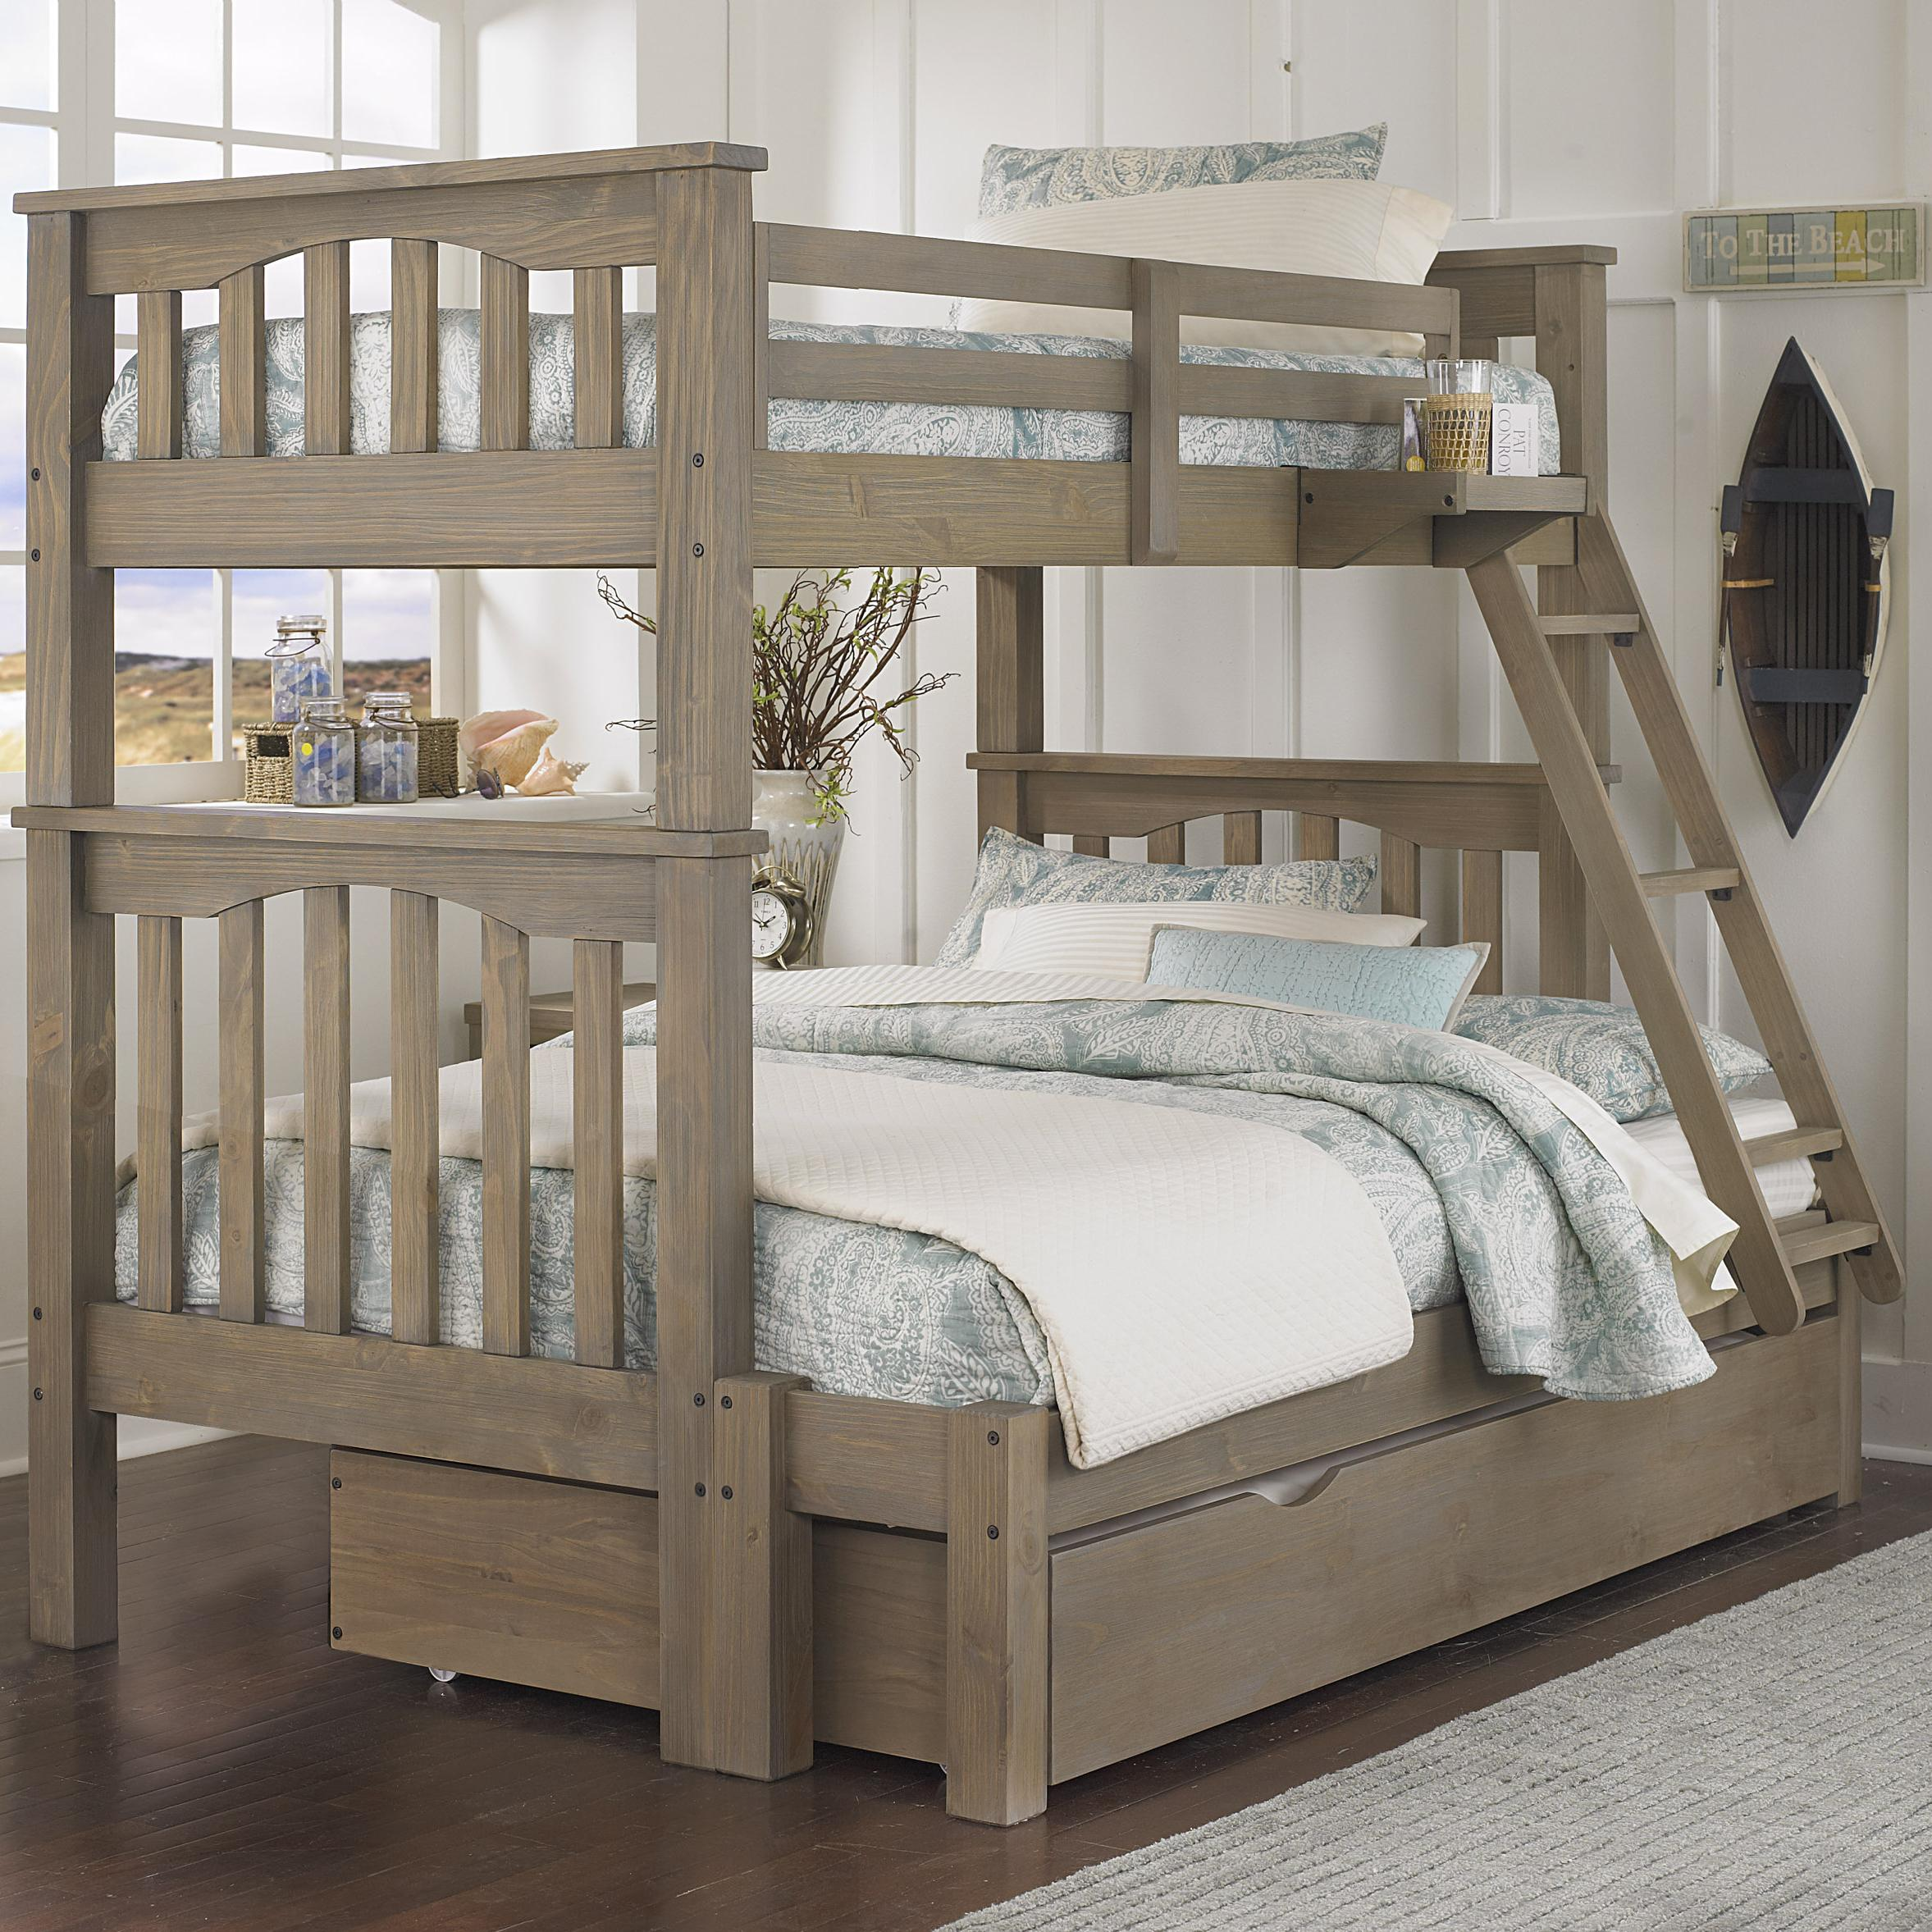 ne kids highlands mission style twin over full harper bunk bed with hanging tray and under bed. Black Bedroom Furniture Sets. Home Design Ideas